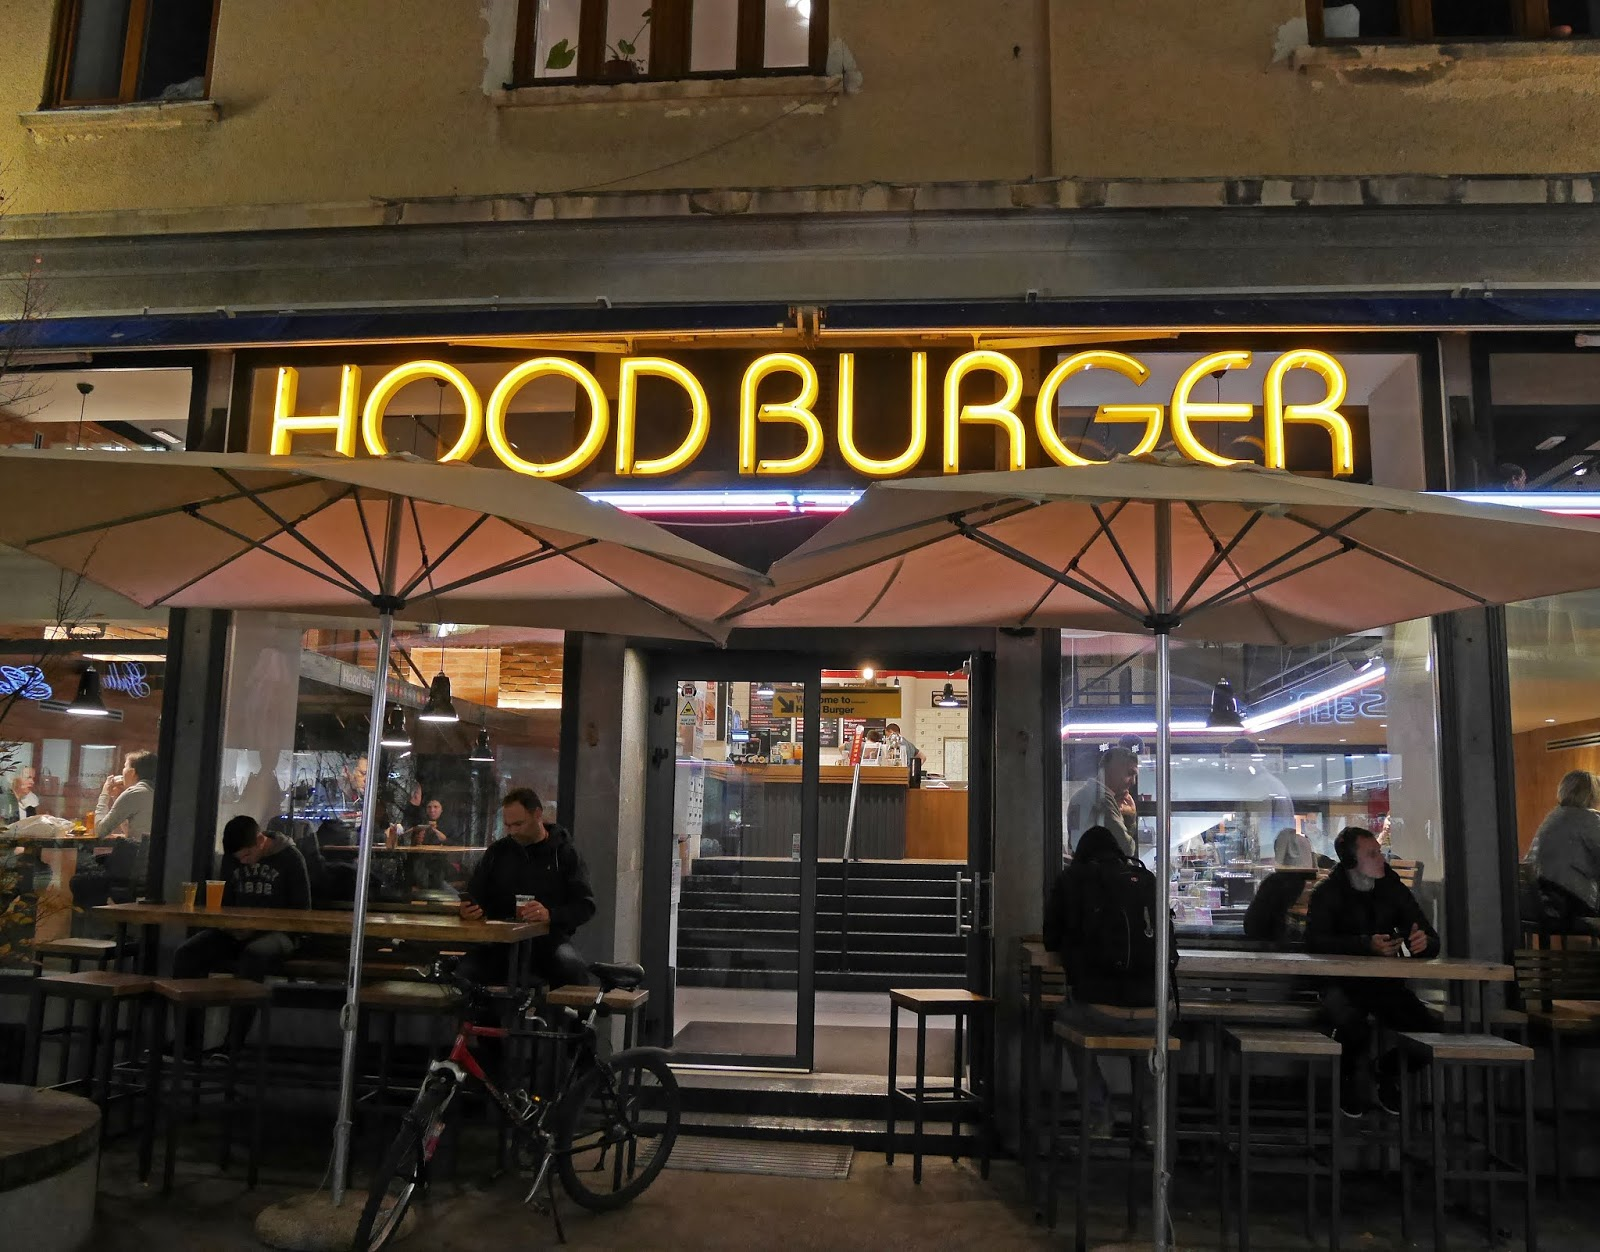 Exterior of Hood Burger in Ljubljana, Slovenia